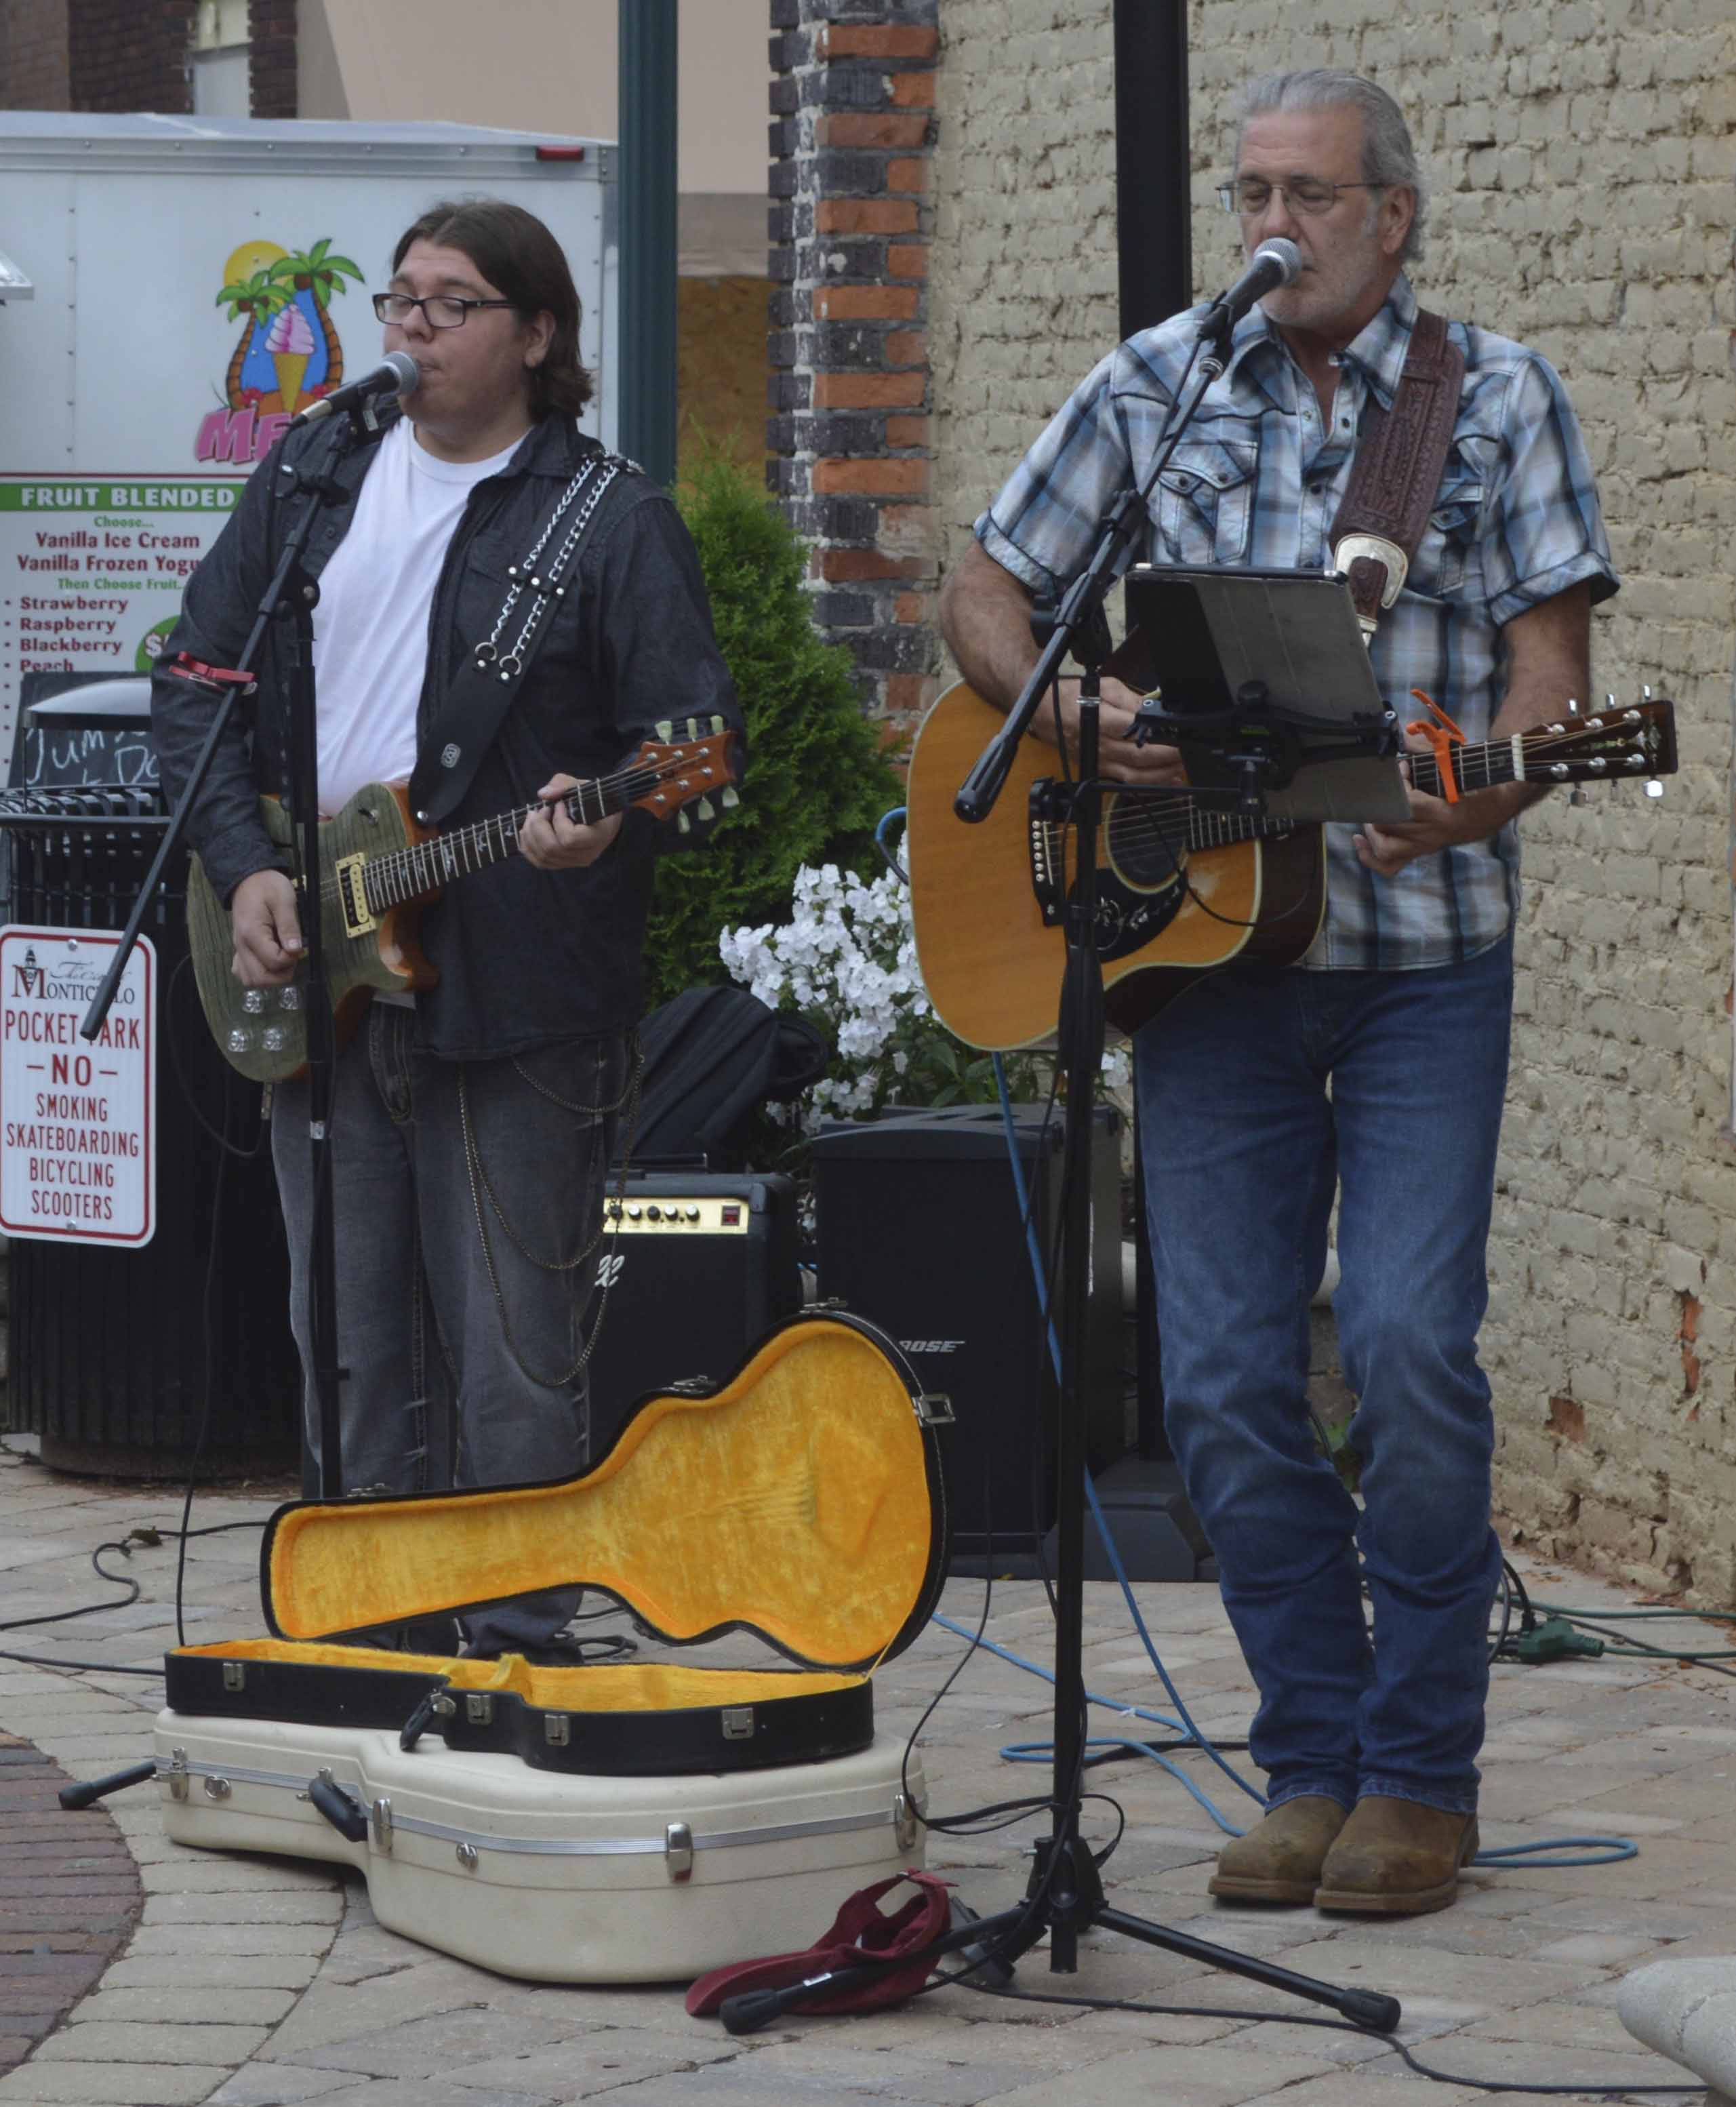 Ron Lafleur & The Boy Scout Hippies performed live for everyone who came out Thursday night. The event runs from five to eight p.m.